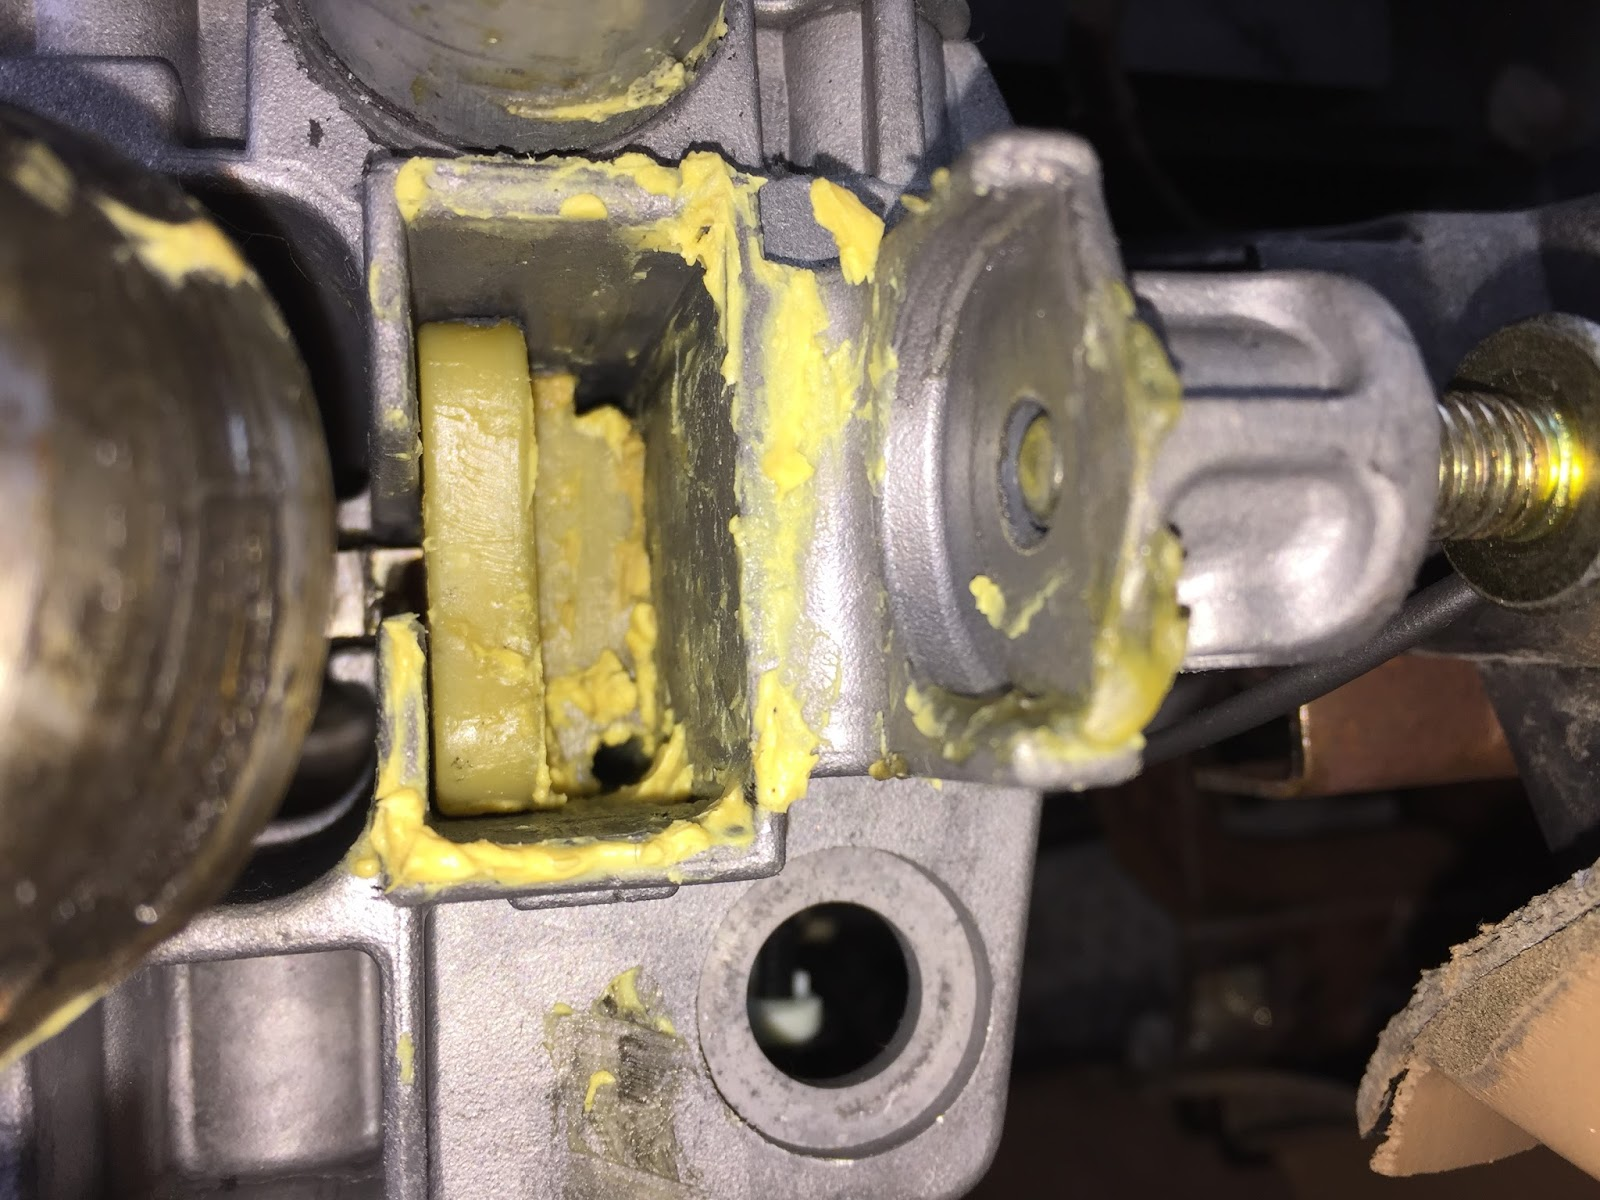 Re Installed The Upper Ignition Switch Actuator Rod Need To Get Some Lithium Grease And Pack That Into Housing